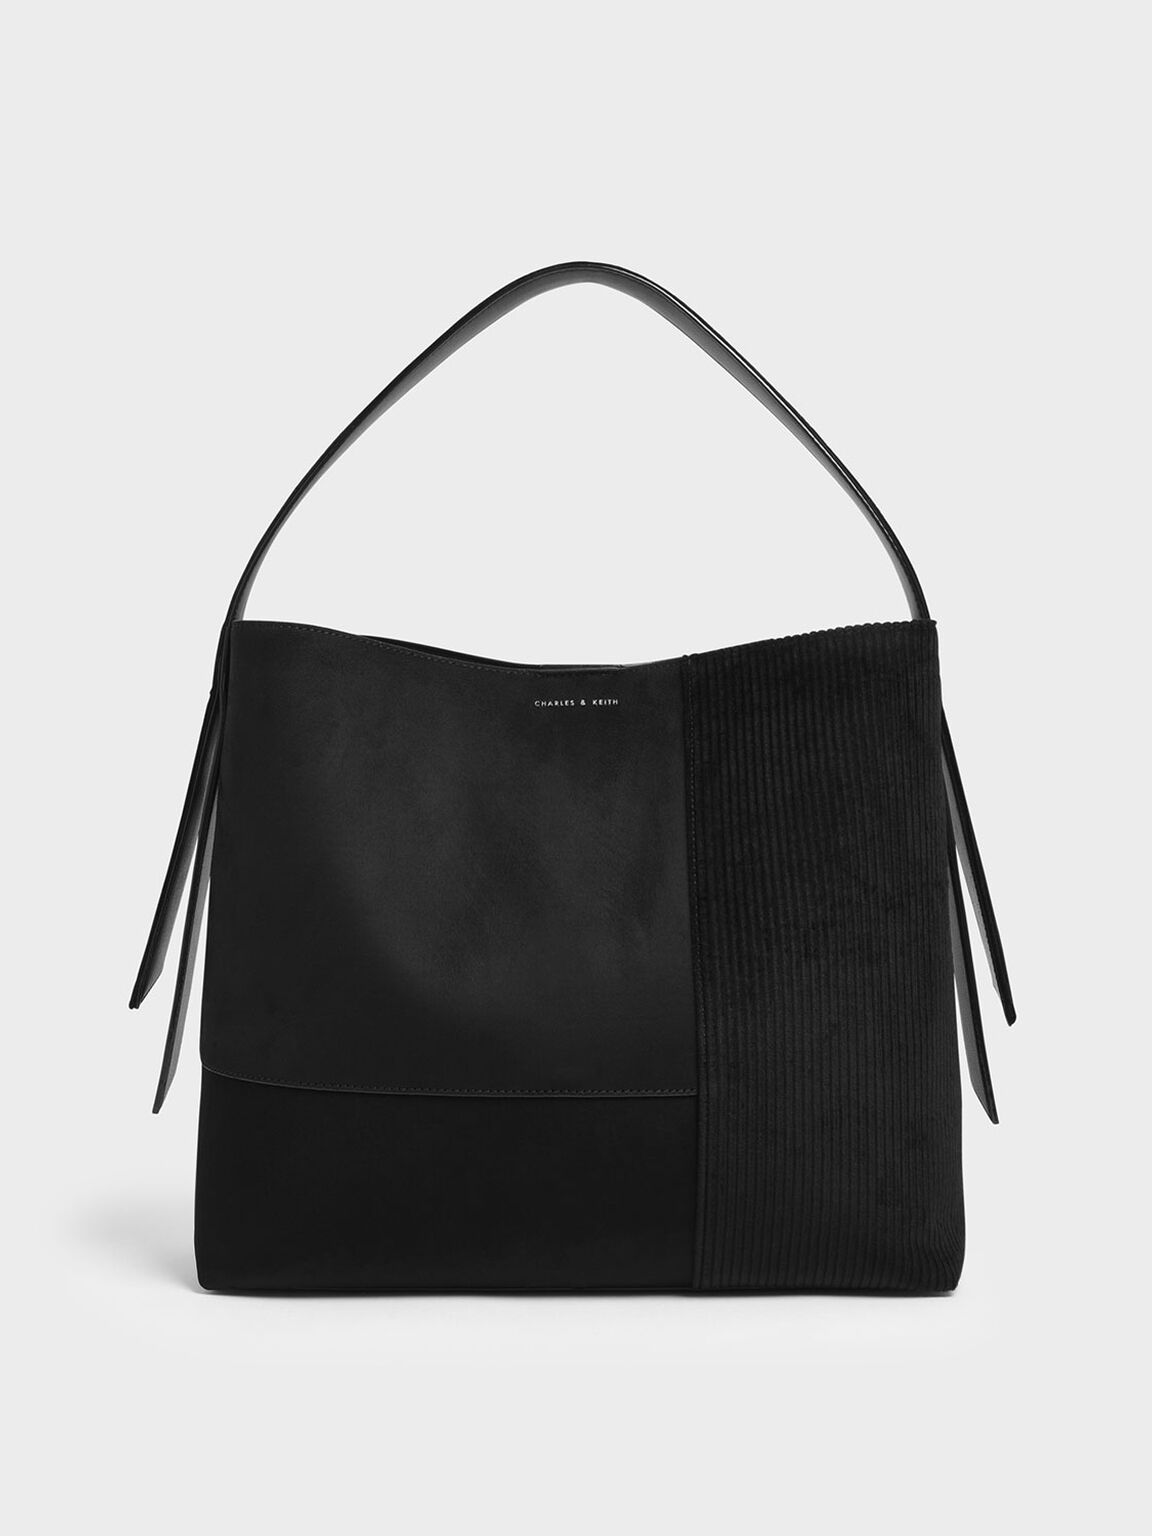 Velvet & Corduroy Square Tote Bag, Black, hi-res